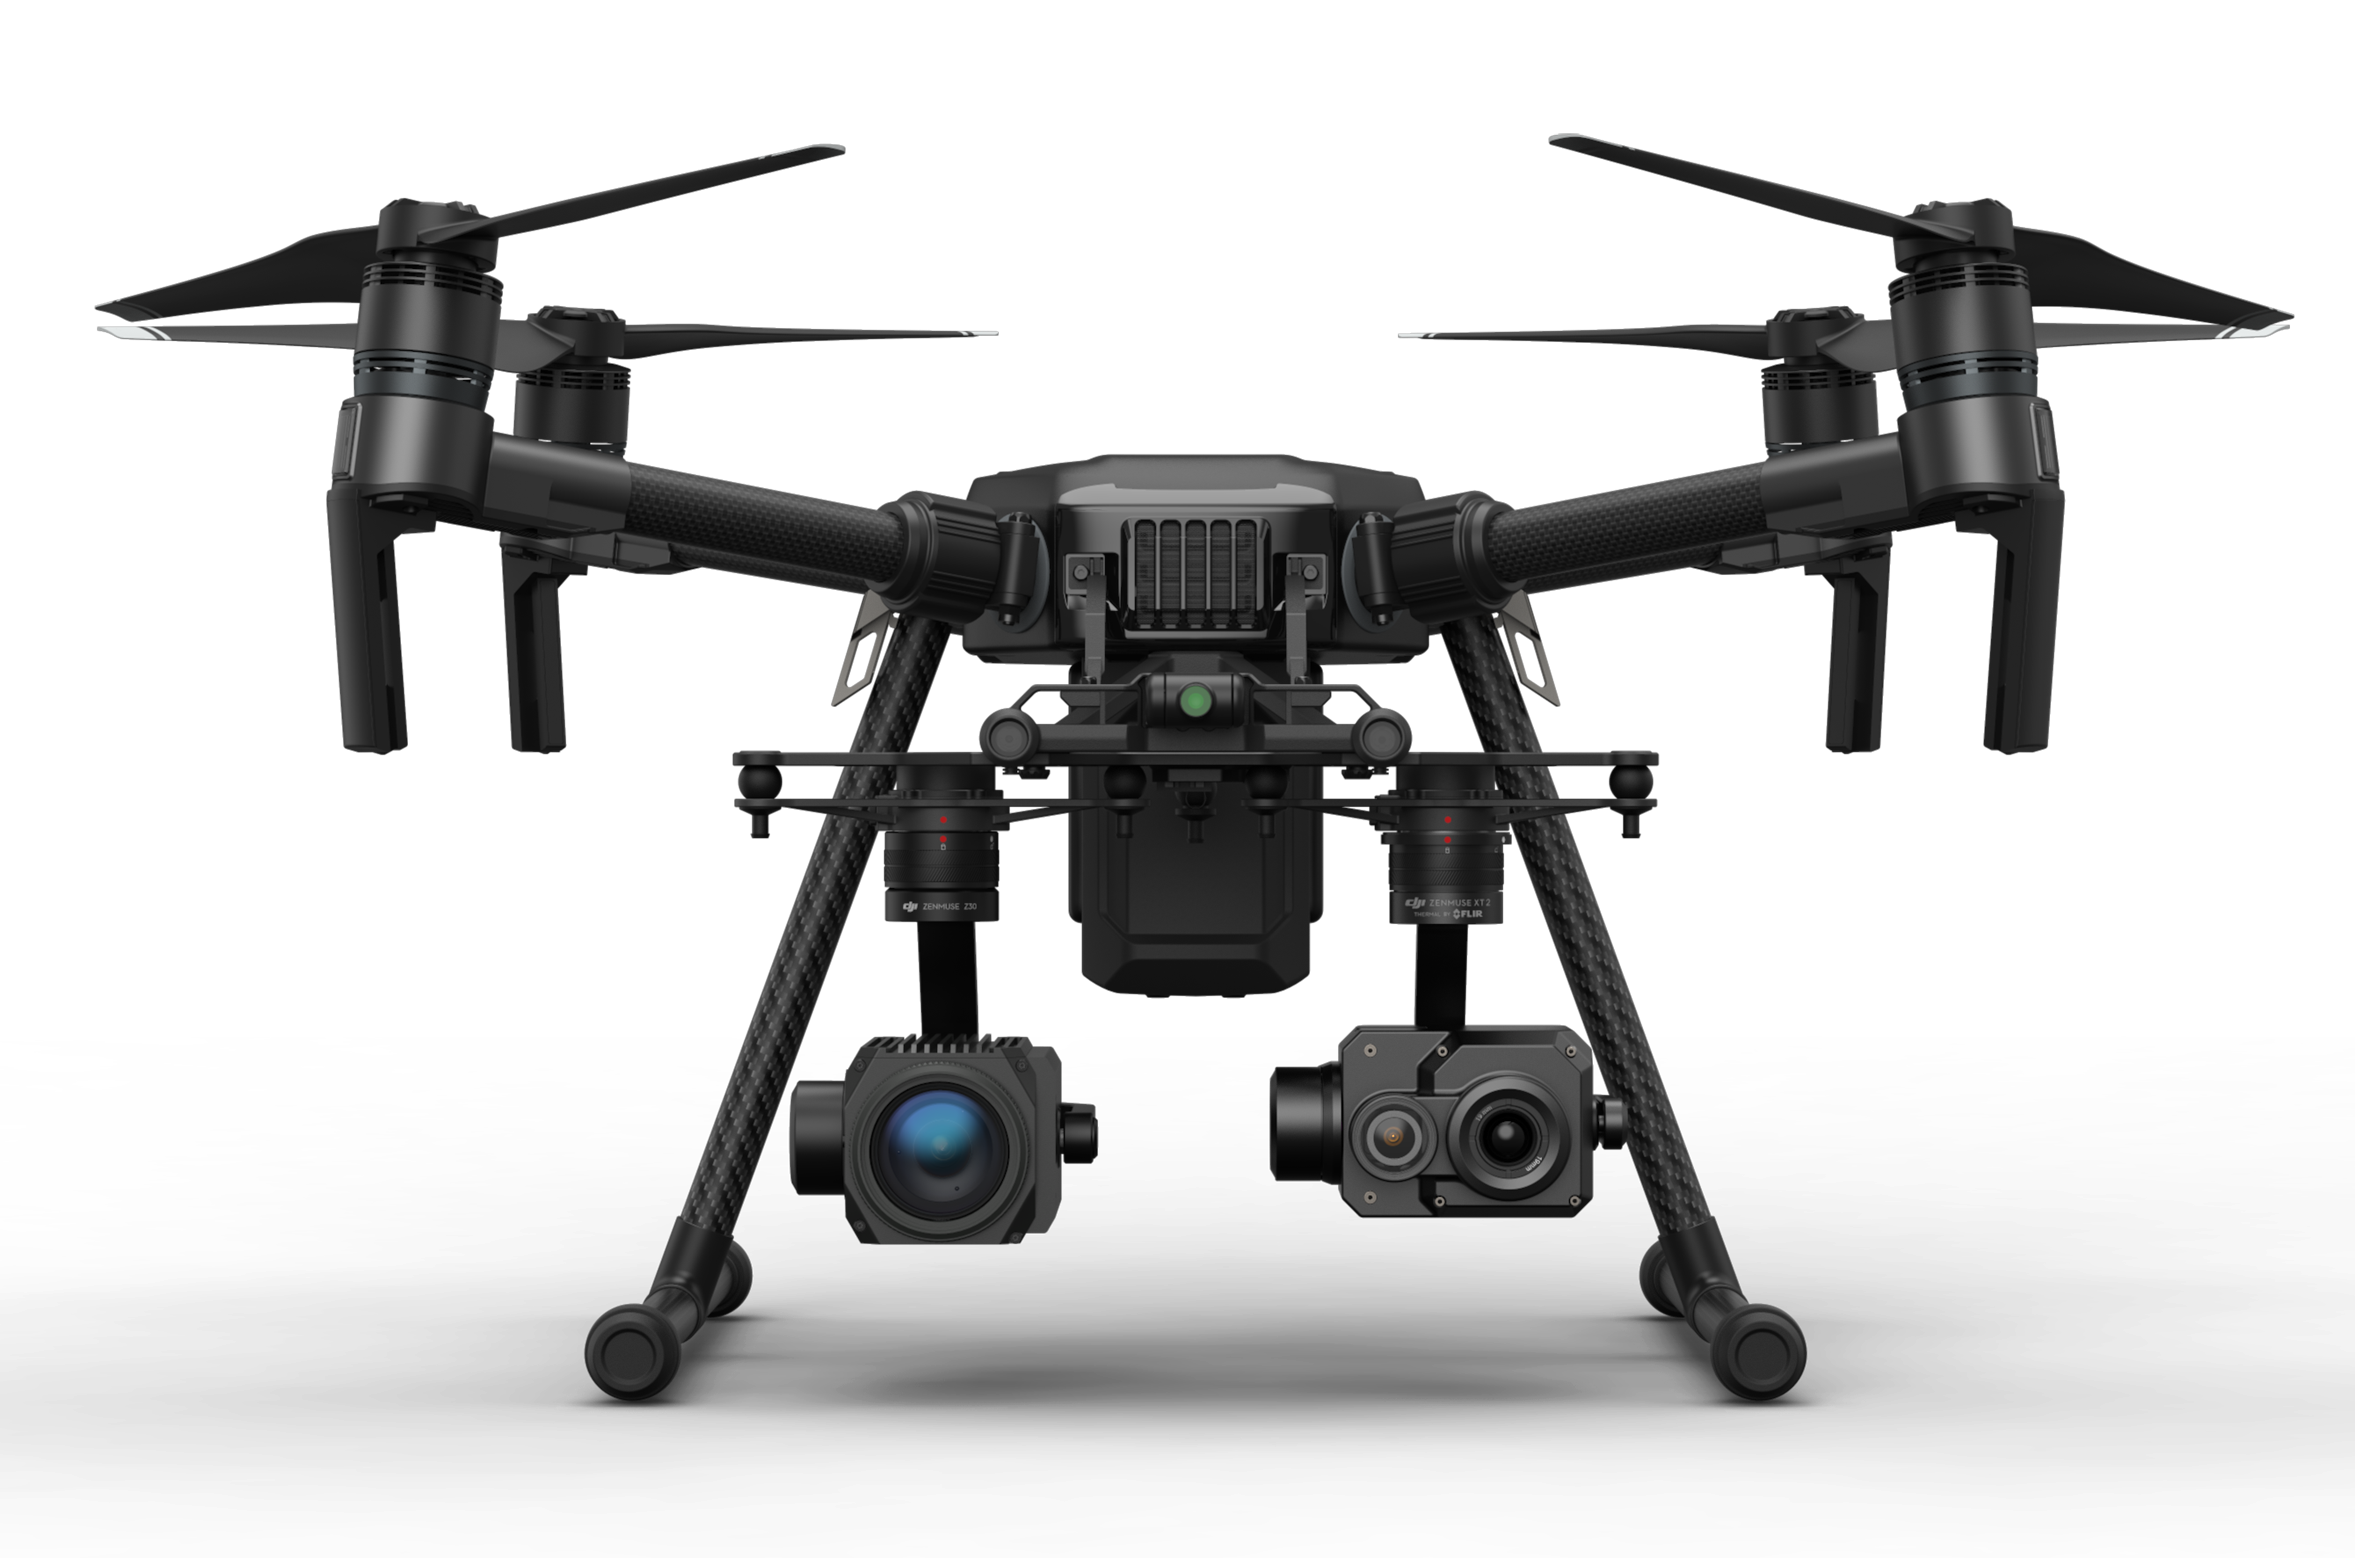 DJI Matrice with Z30 Camera and XT2 Camera